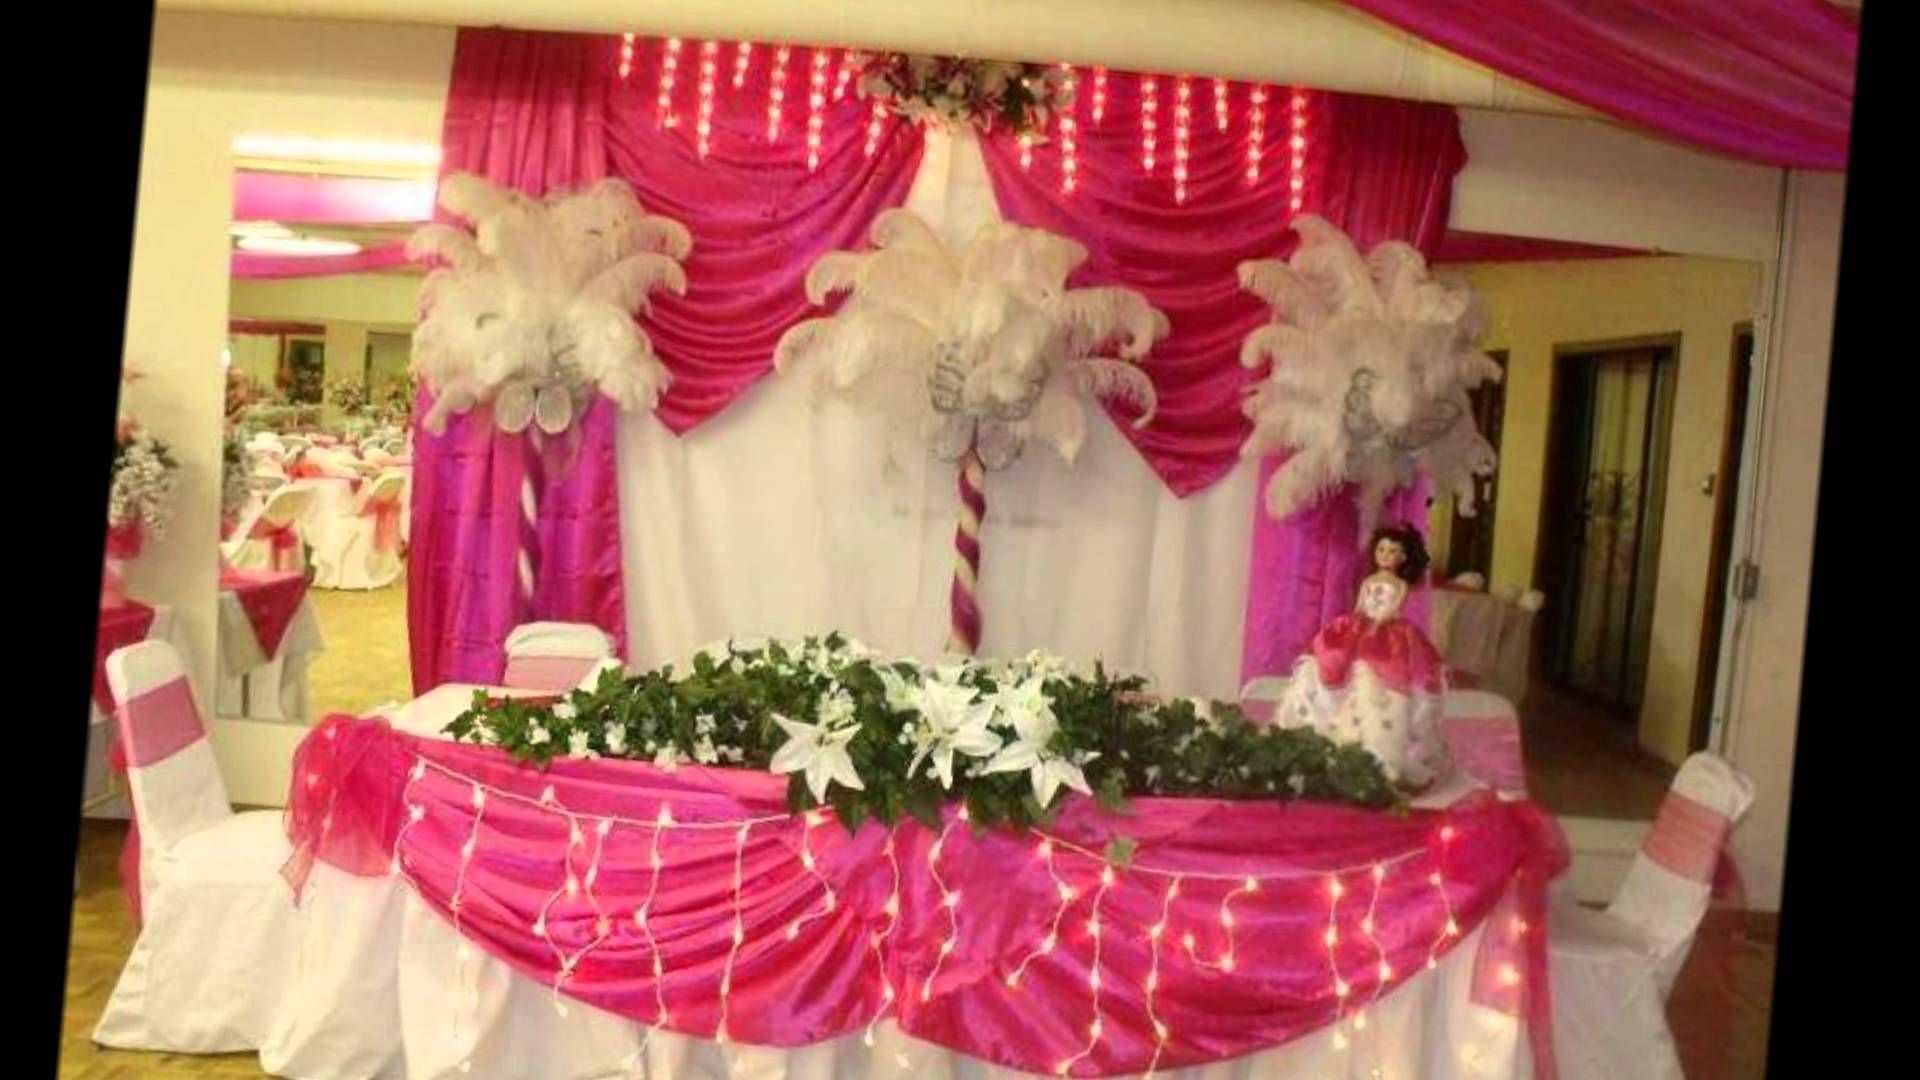 Faos events decoranos salones e iglesias contamos con for Sillas para quinceaneras